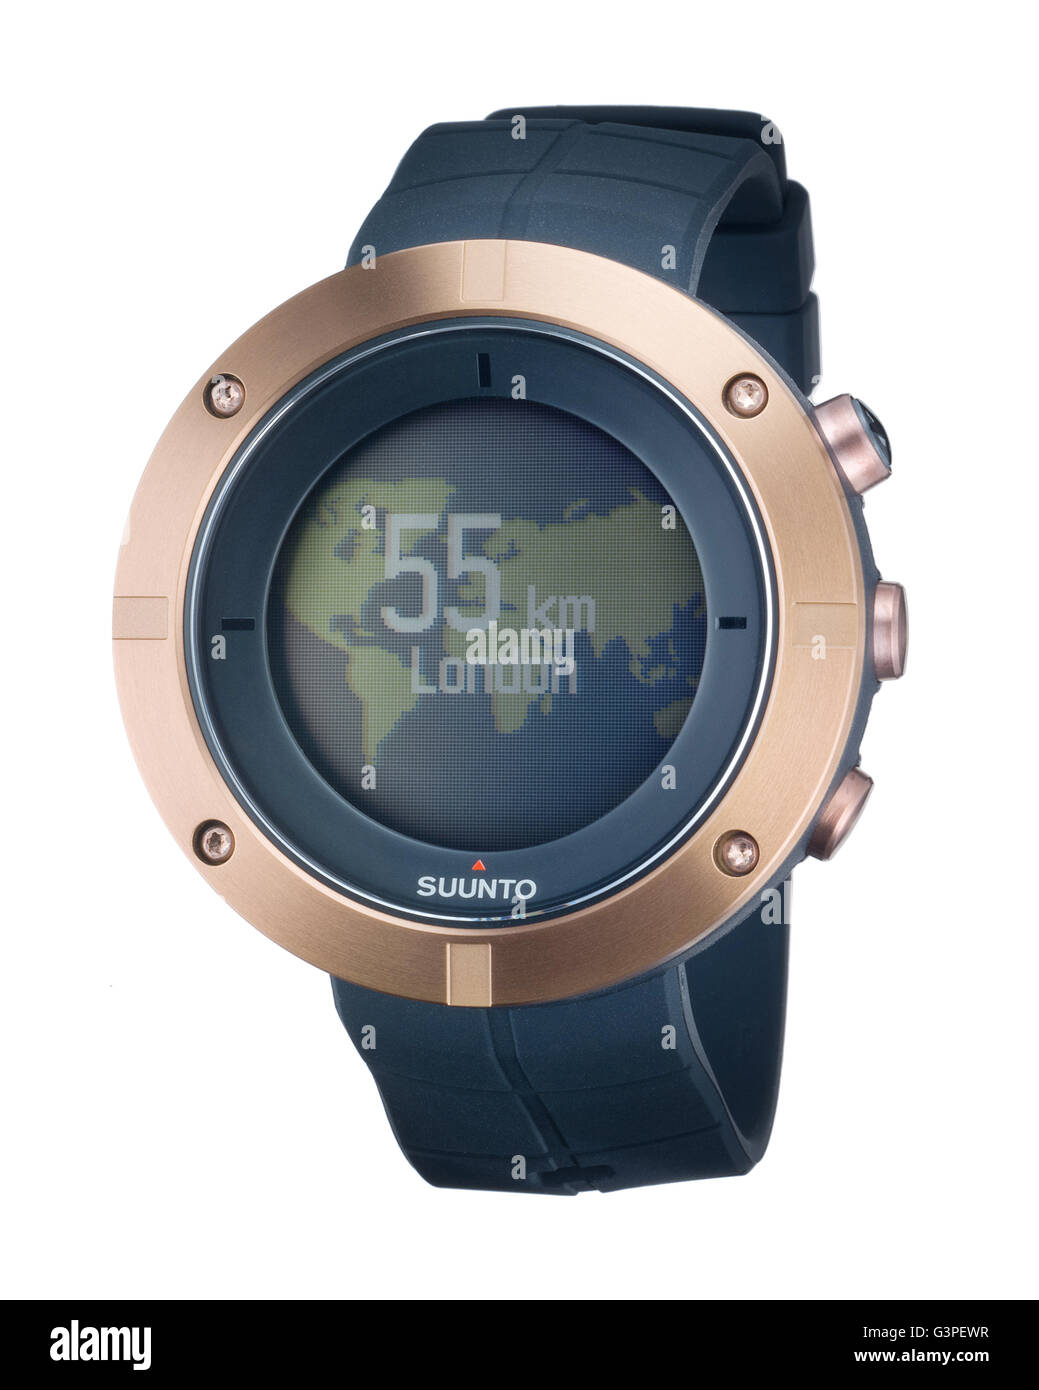 Suunto Kailash Copper travelers watch. Smartwatch tracks travel and connection to Apple iPhone. - Stock Image